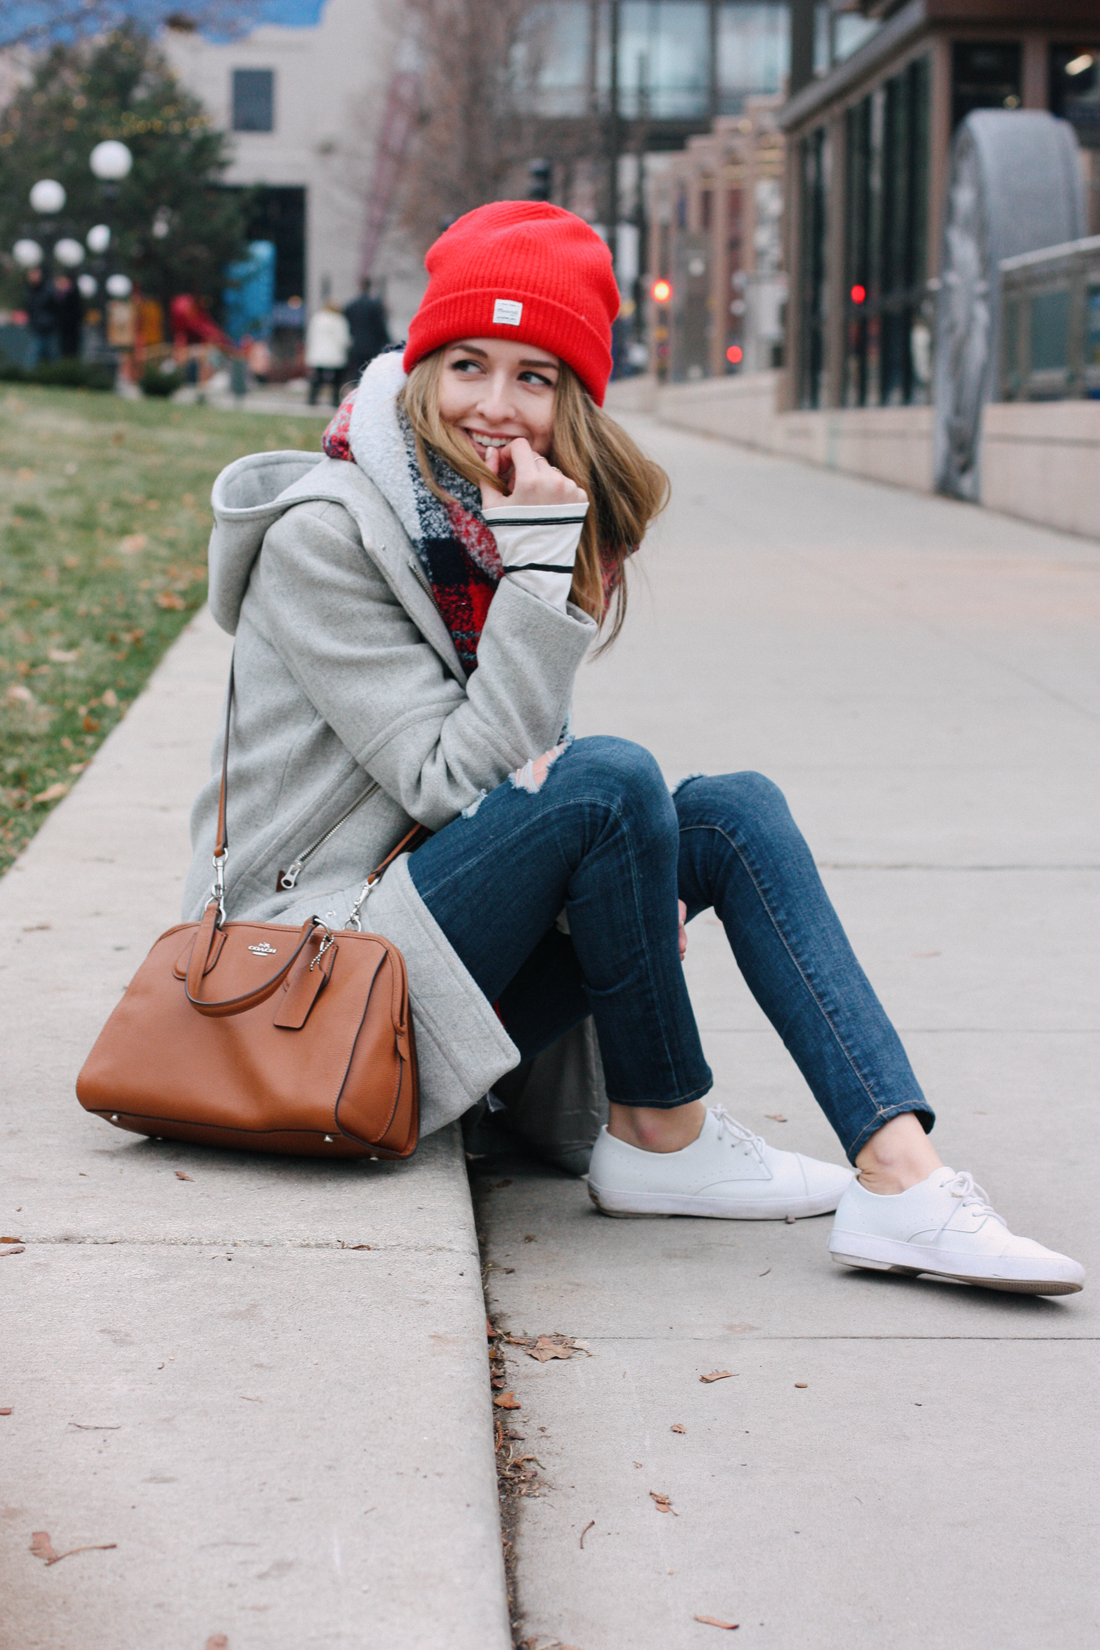 truelane in Maison Jules, J.Crew, Madewell, Coach.png